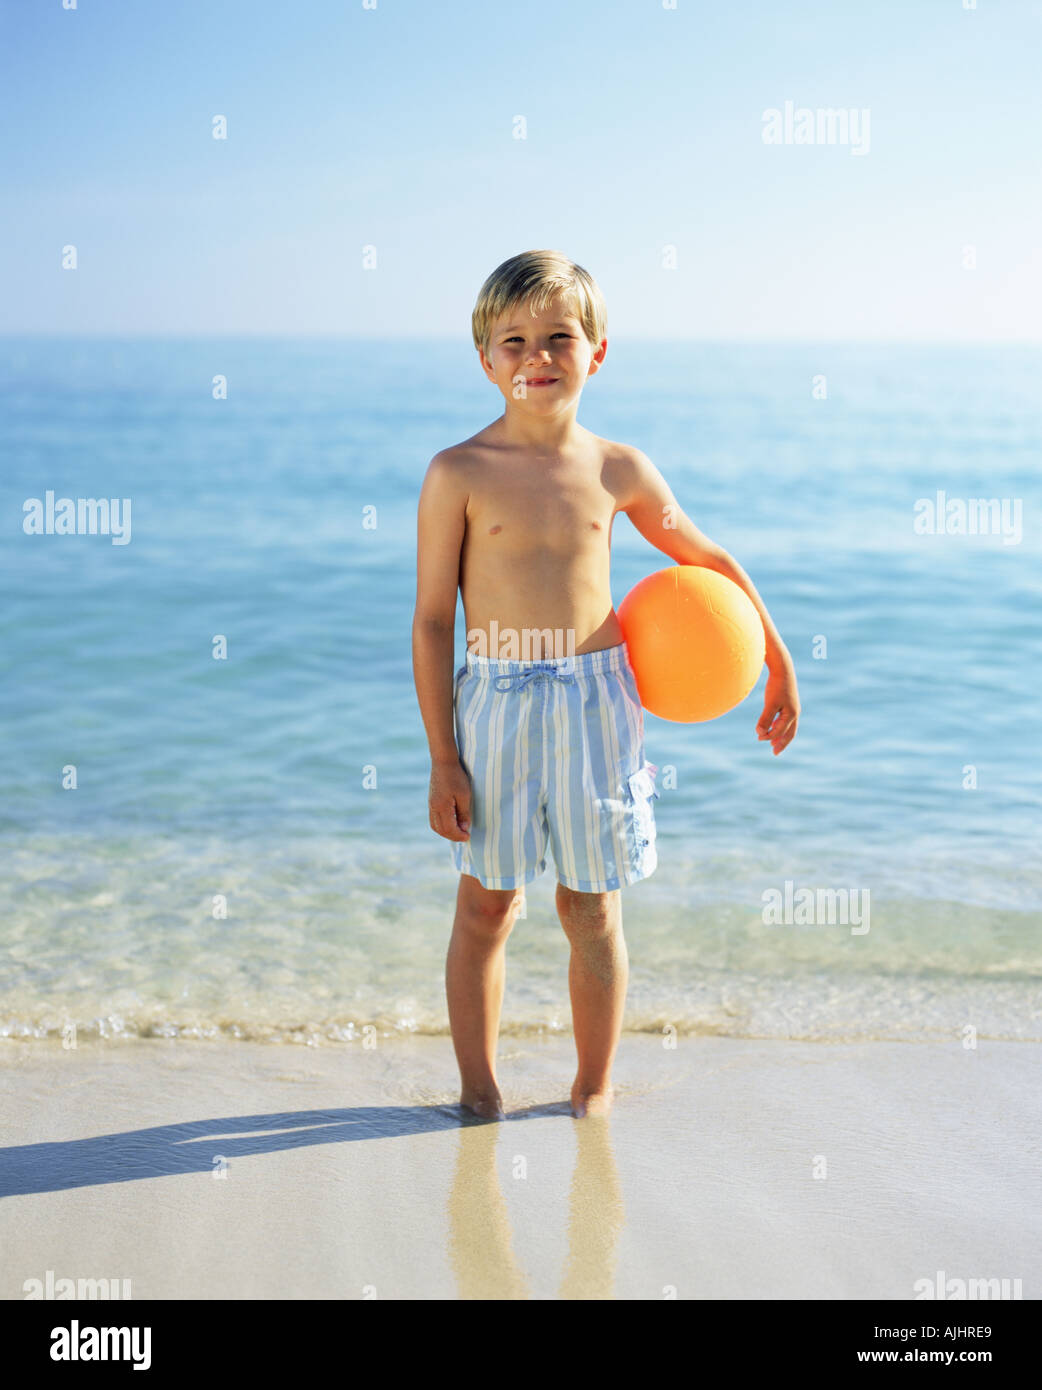 Boy with a beach ball - Stock Image